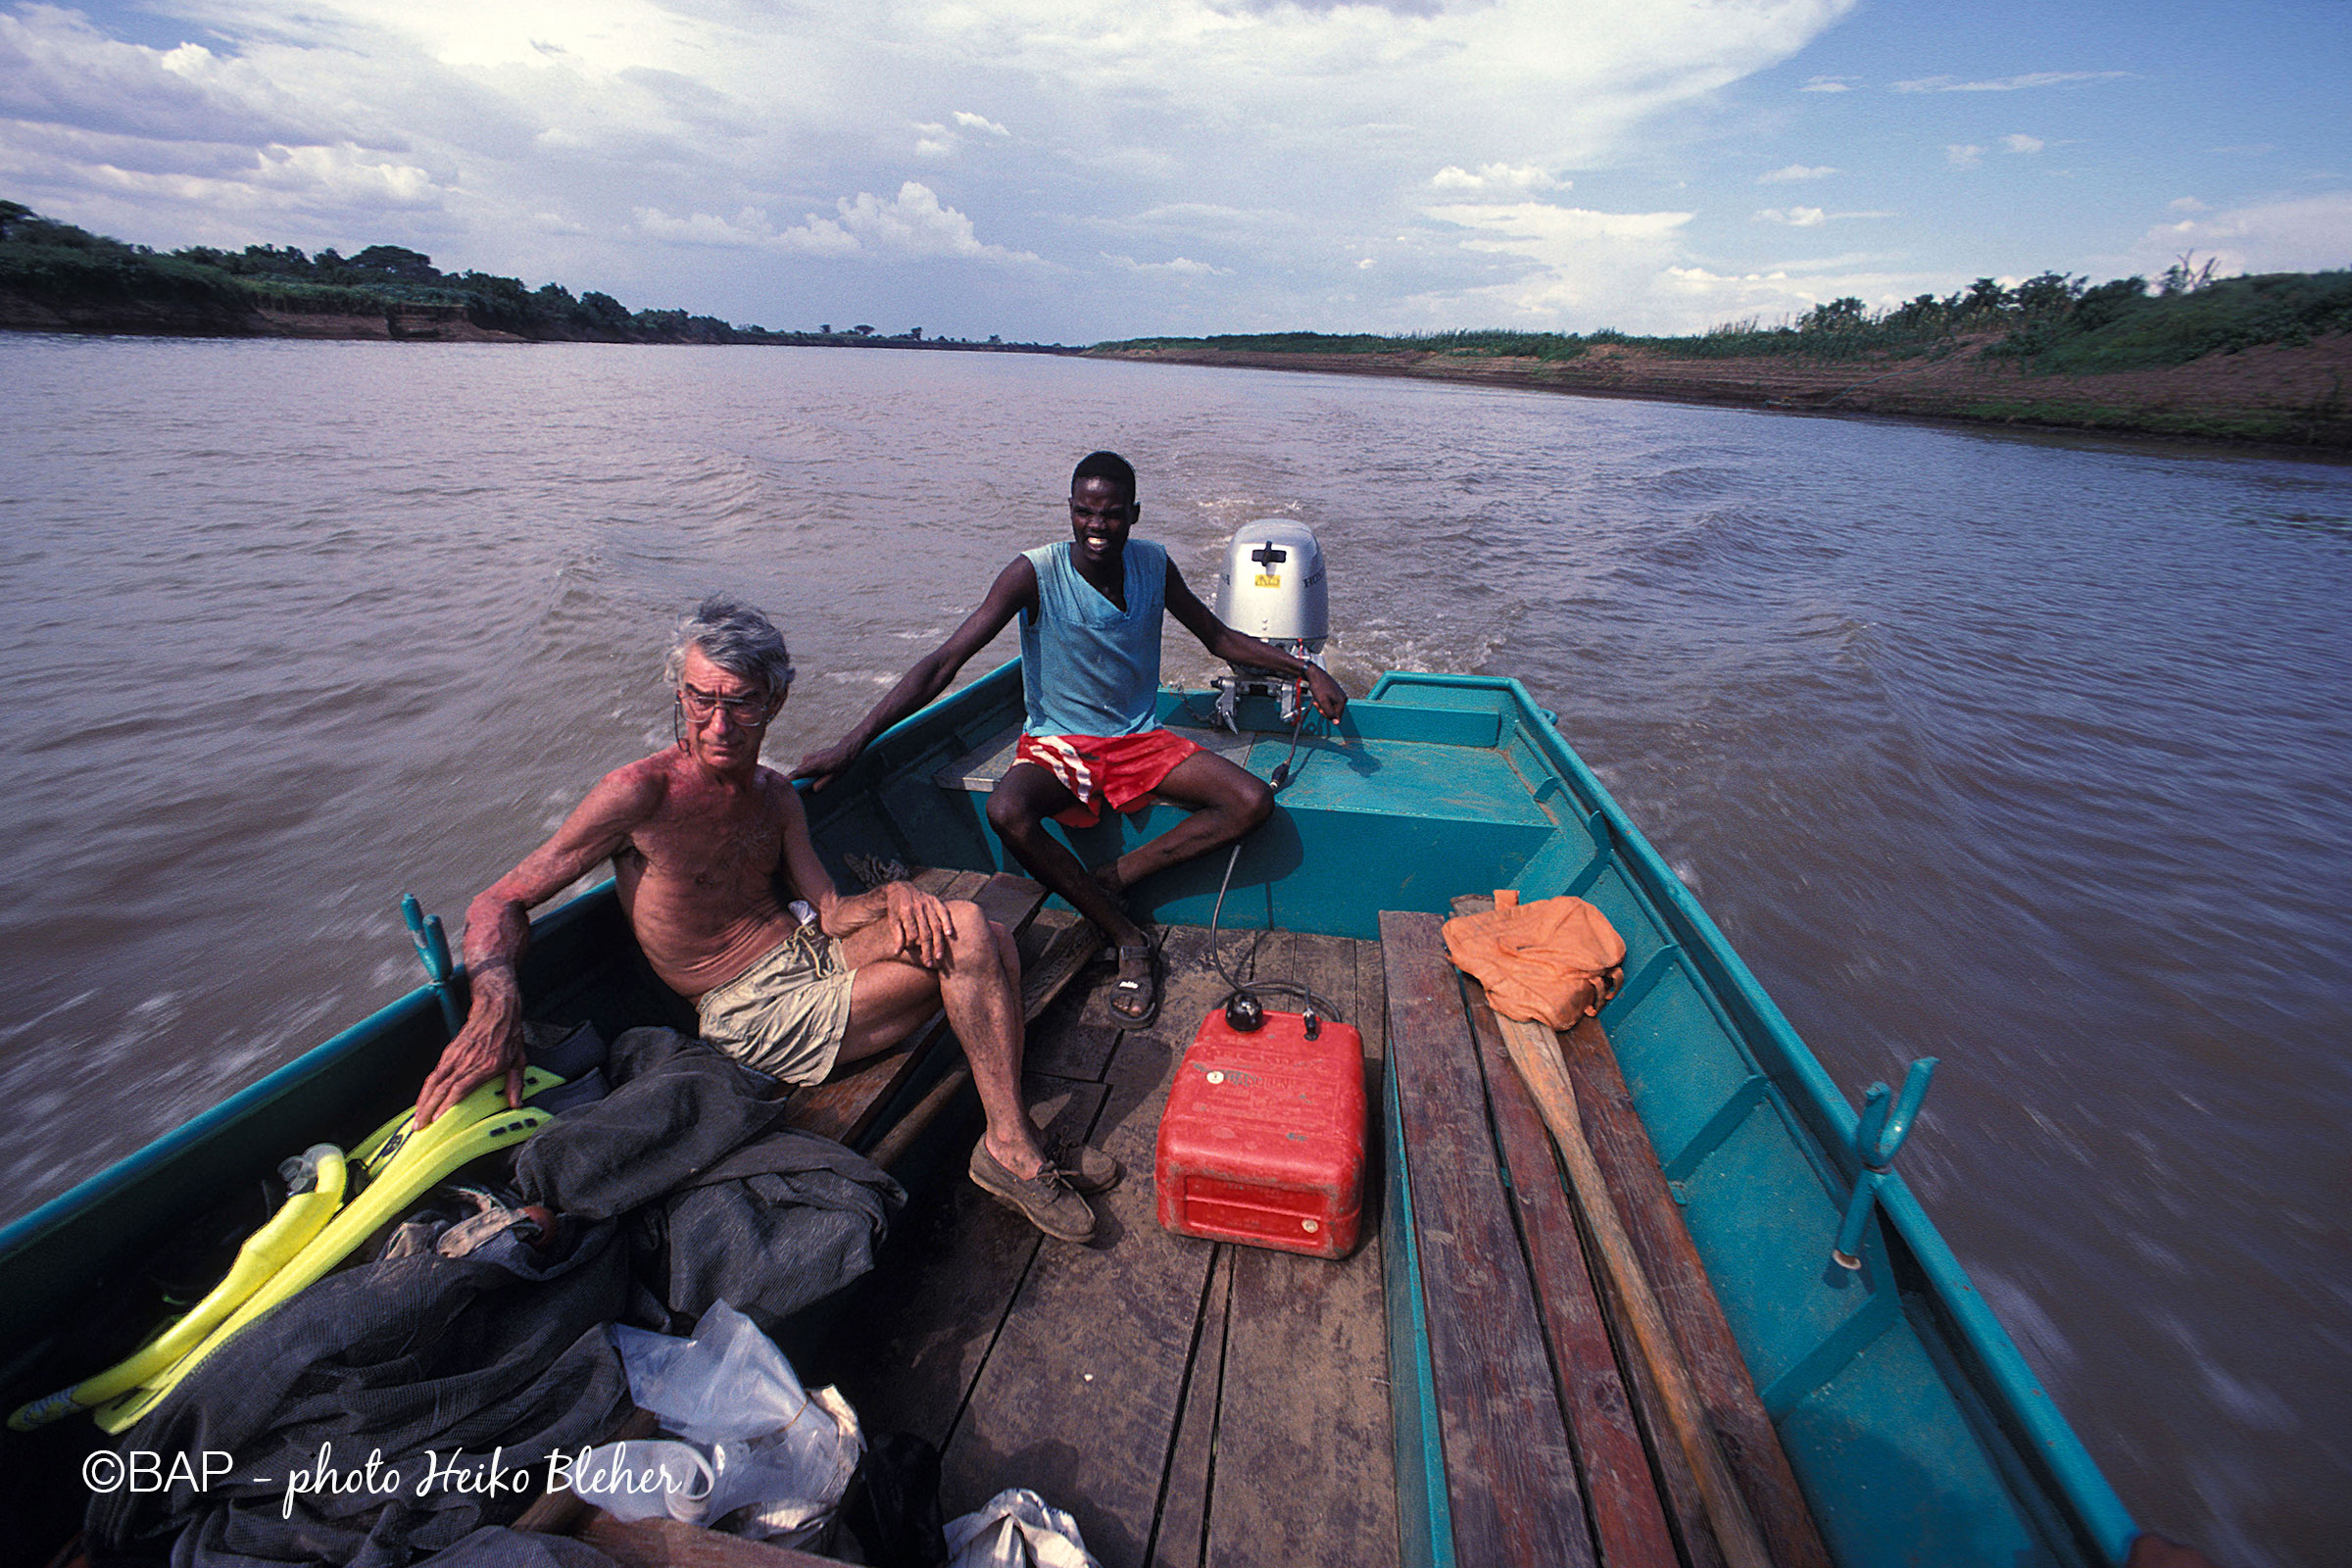 Going with a boat from Omorate down the muddy Omo River, Ethiopia. Photo by H. Bleher